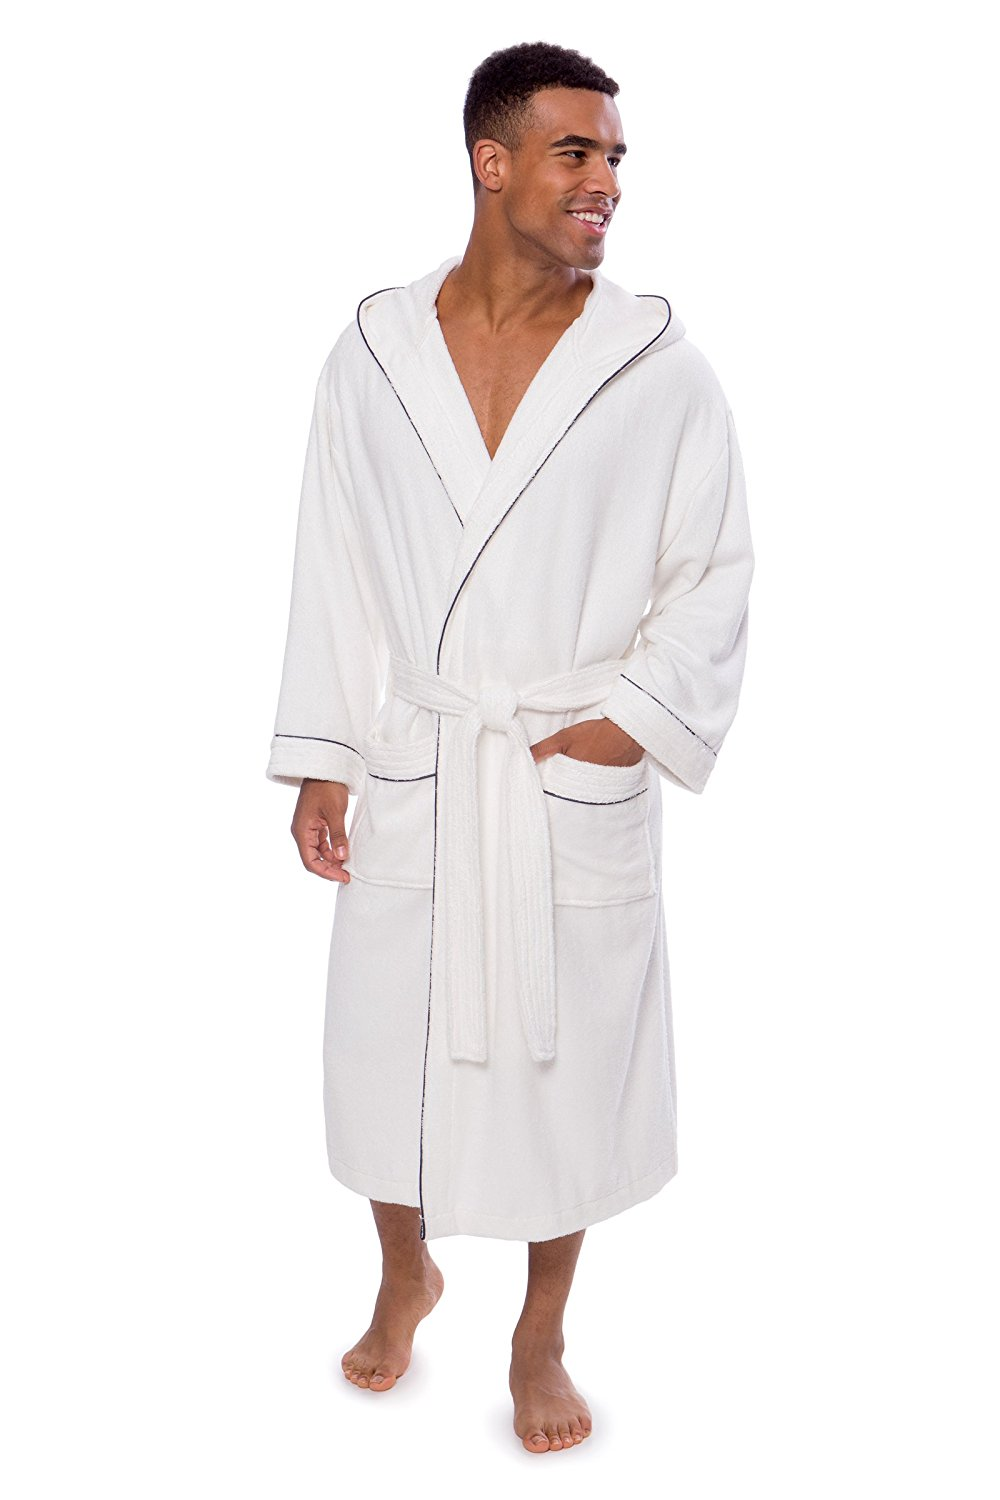 Get Quotations · TexereSilk Men s Bathrobe - Terry Cloth Robe For Men -  Luxury Hooded Spa Robe For Him ca8406e04